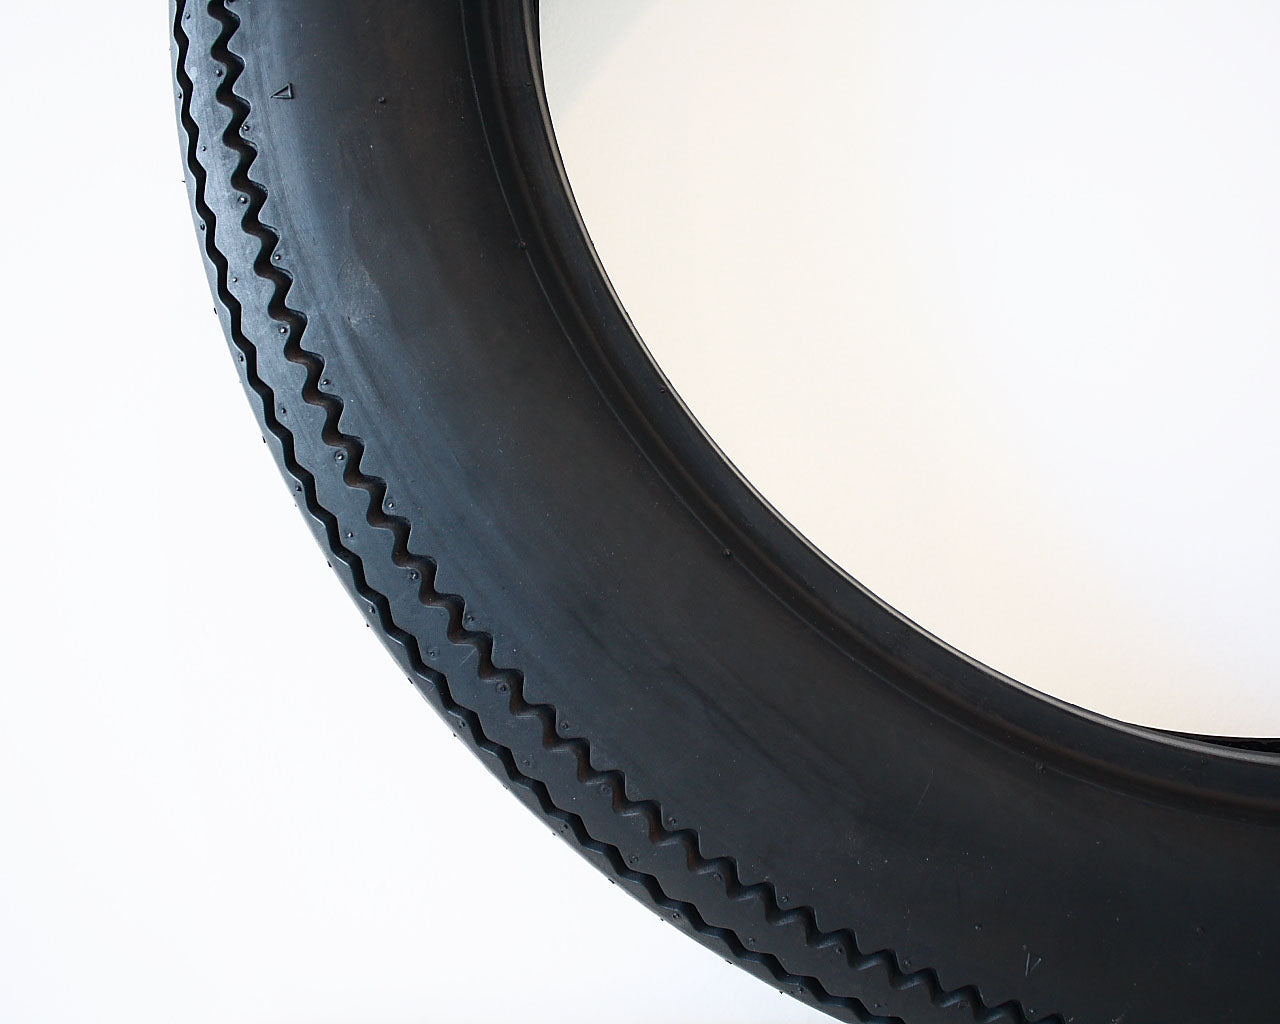 Tyre, Deluxe Champion Replica, 450-18